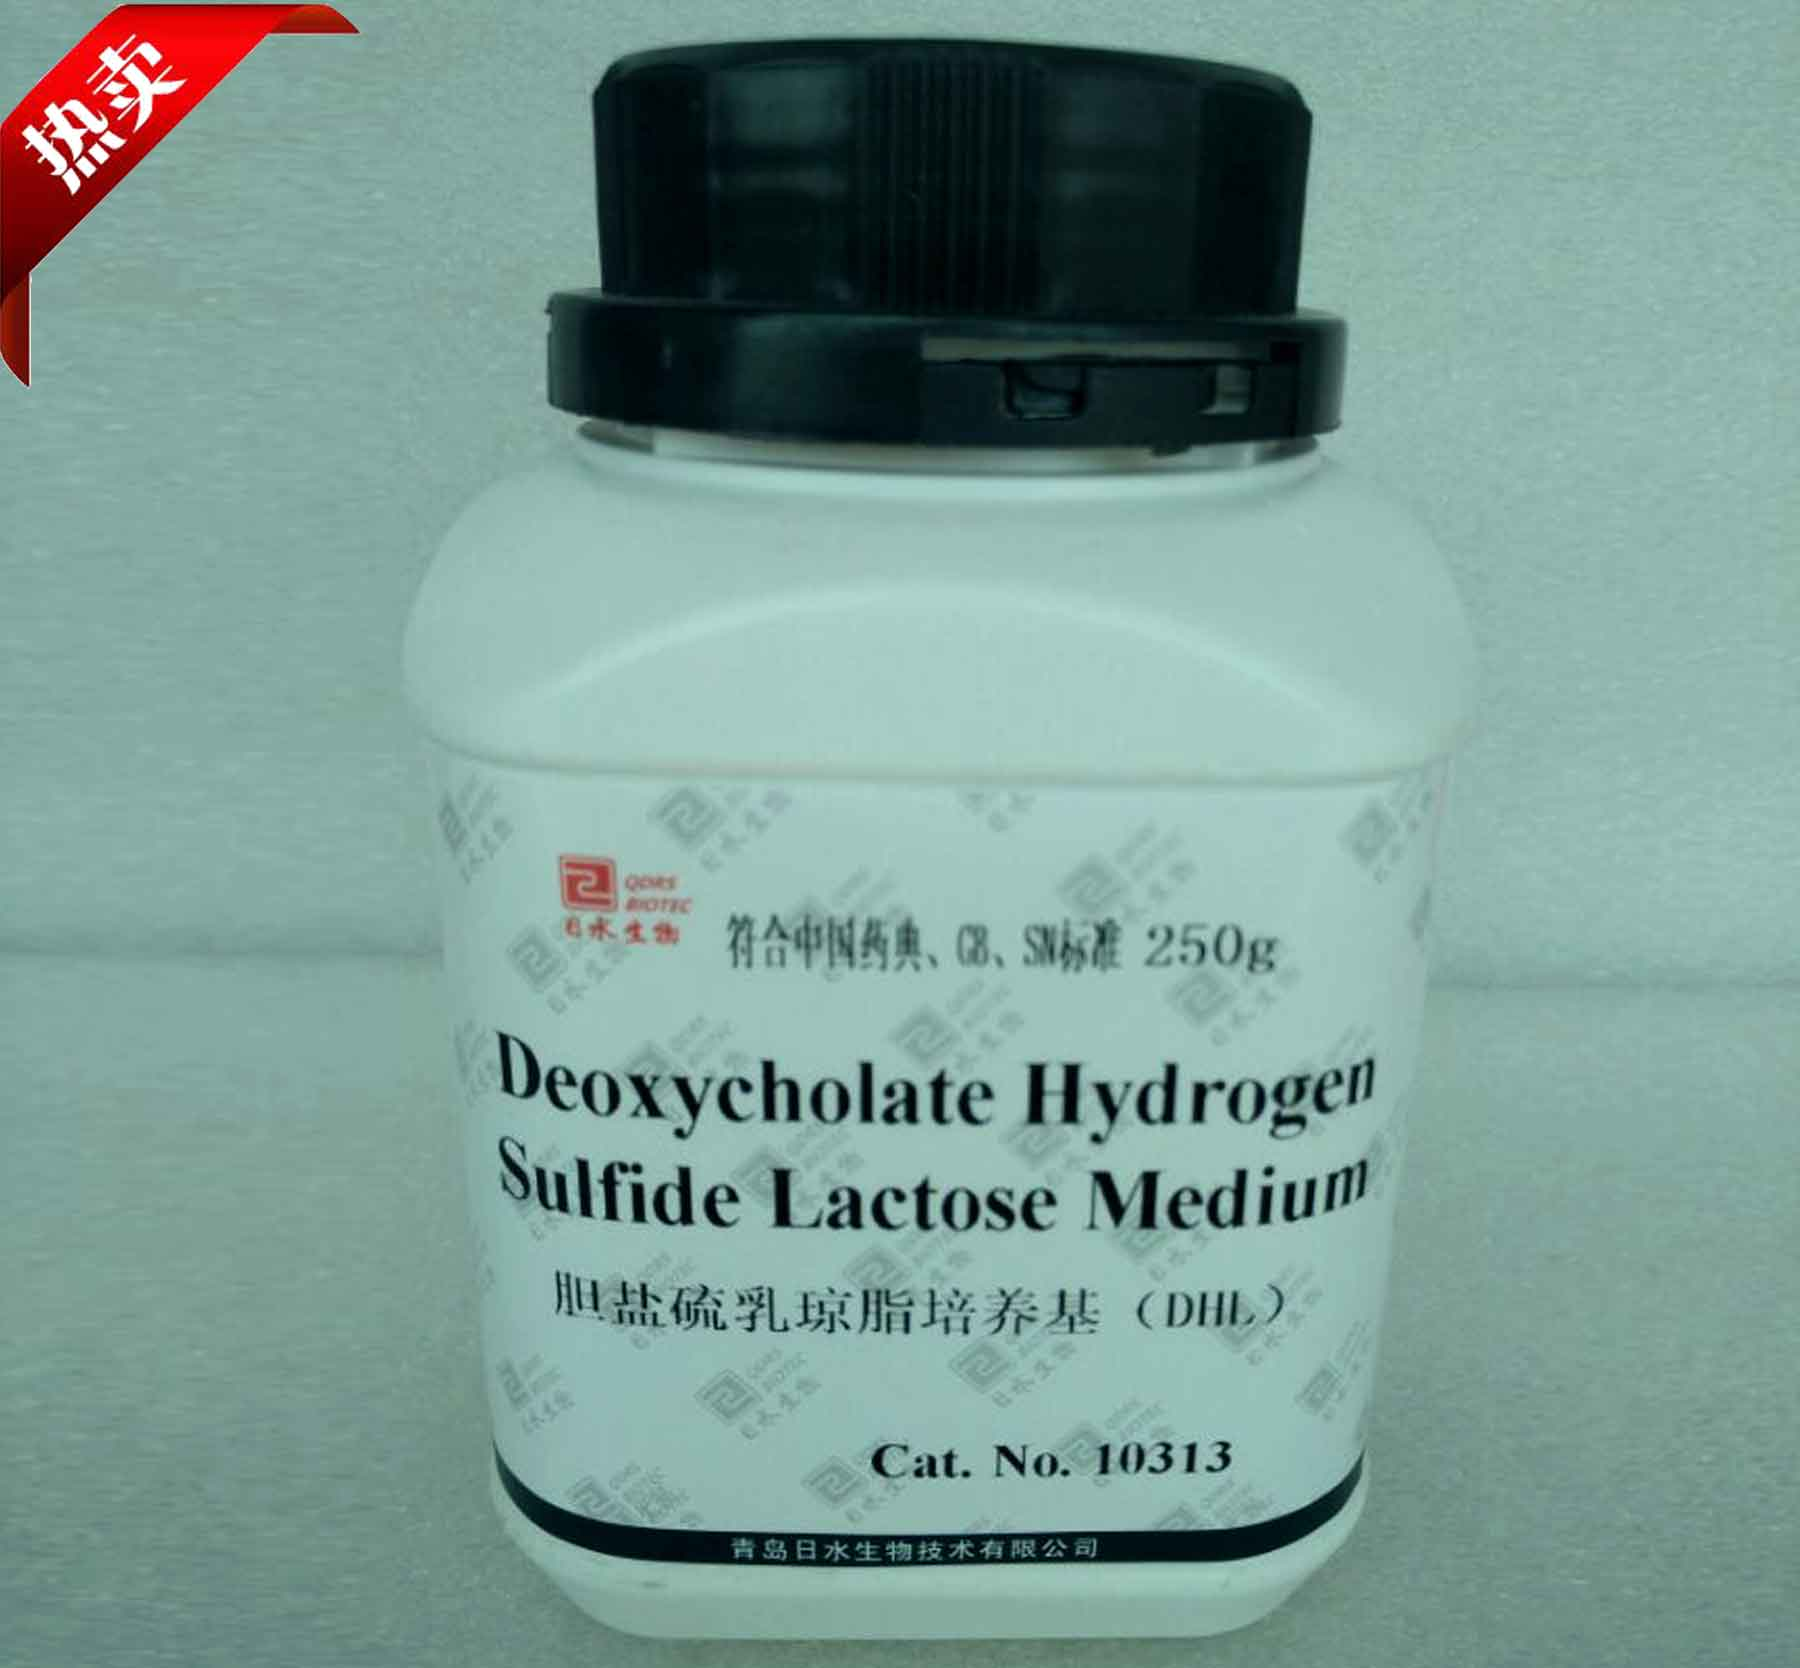 胆盐硫乳琼脂培养基_DHL_deoxycholate hydrogen sulfide lactose medium